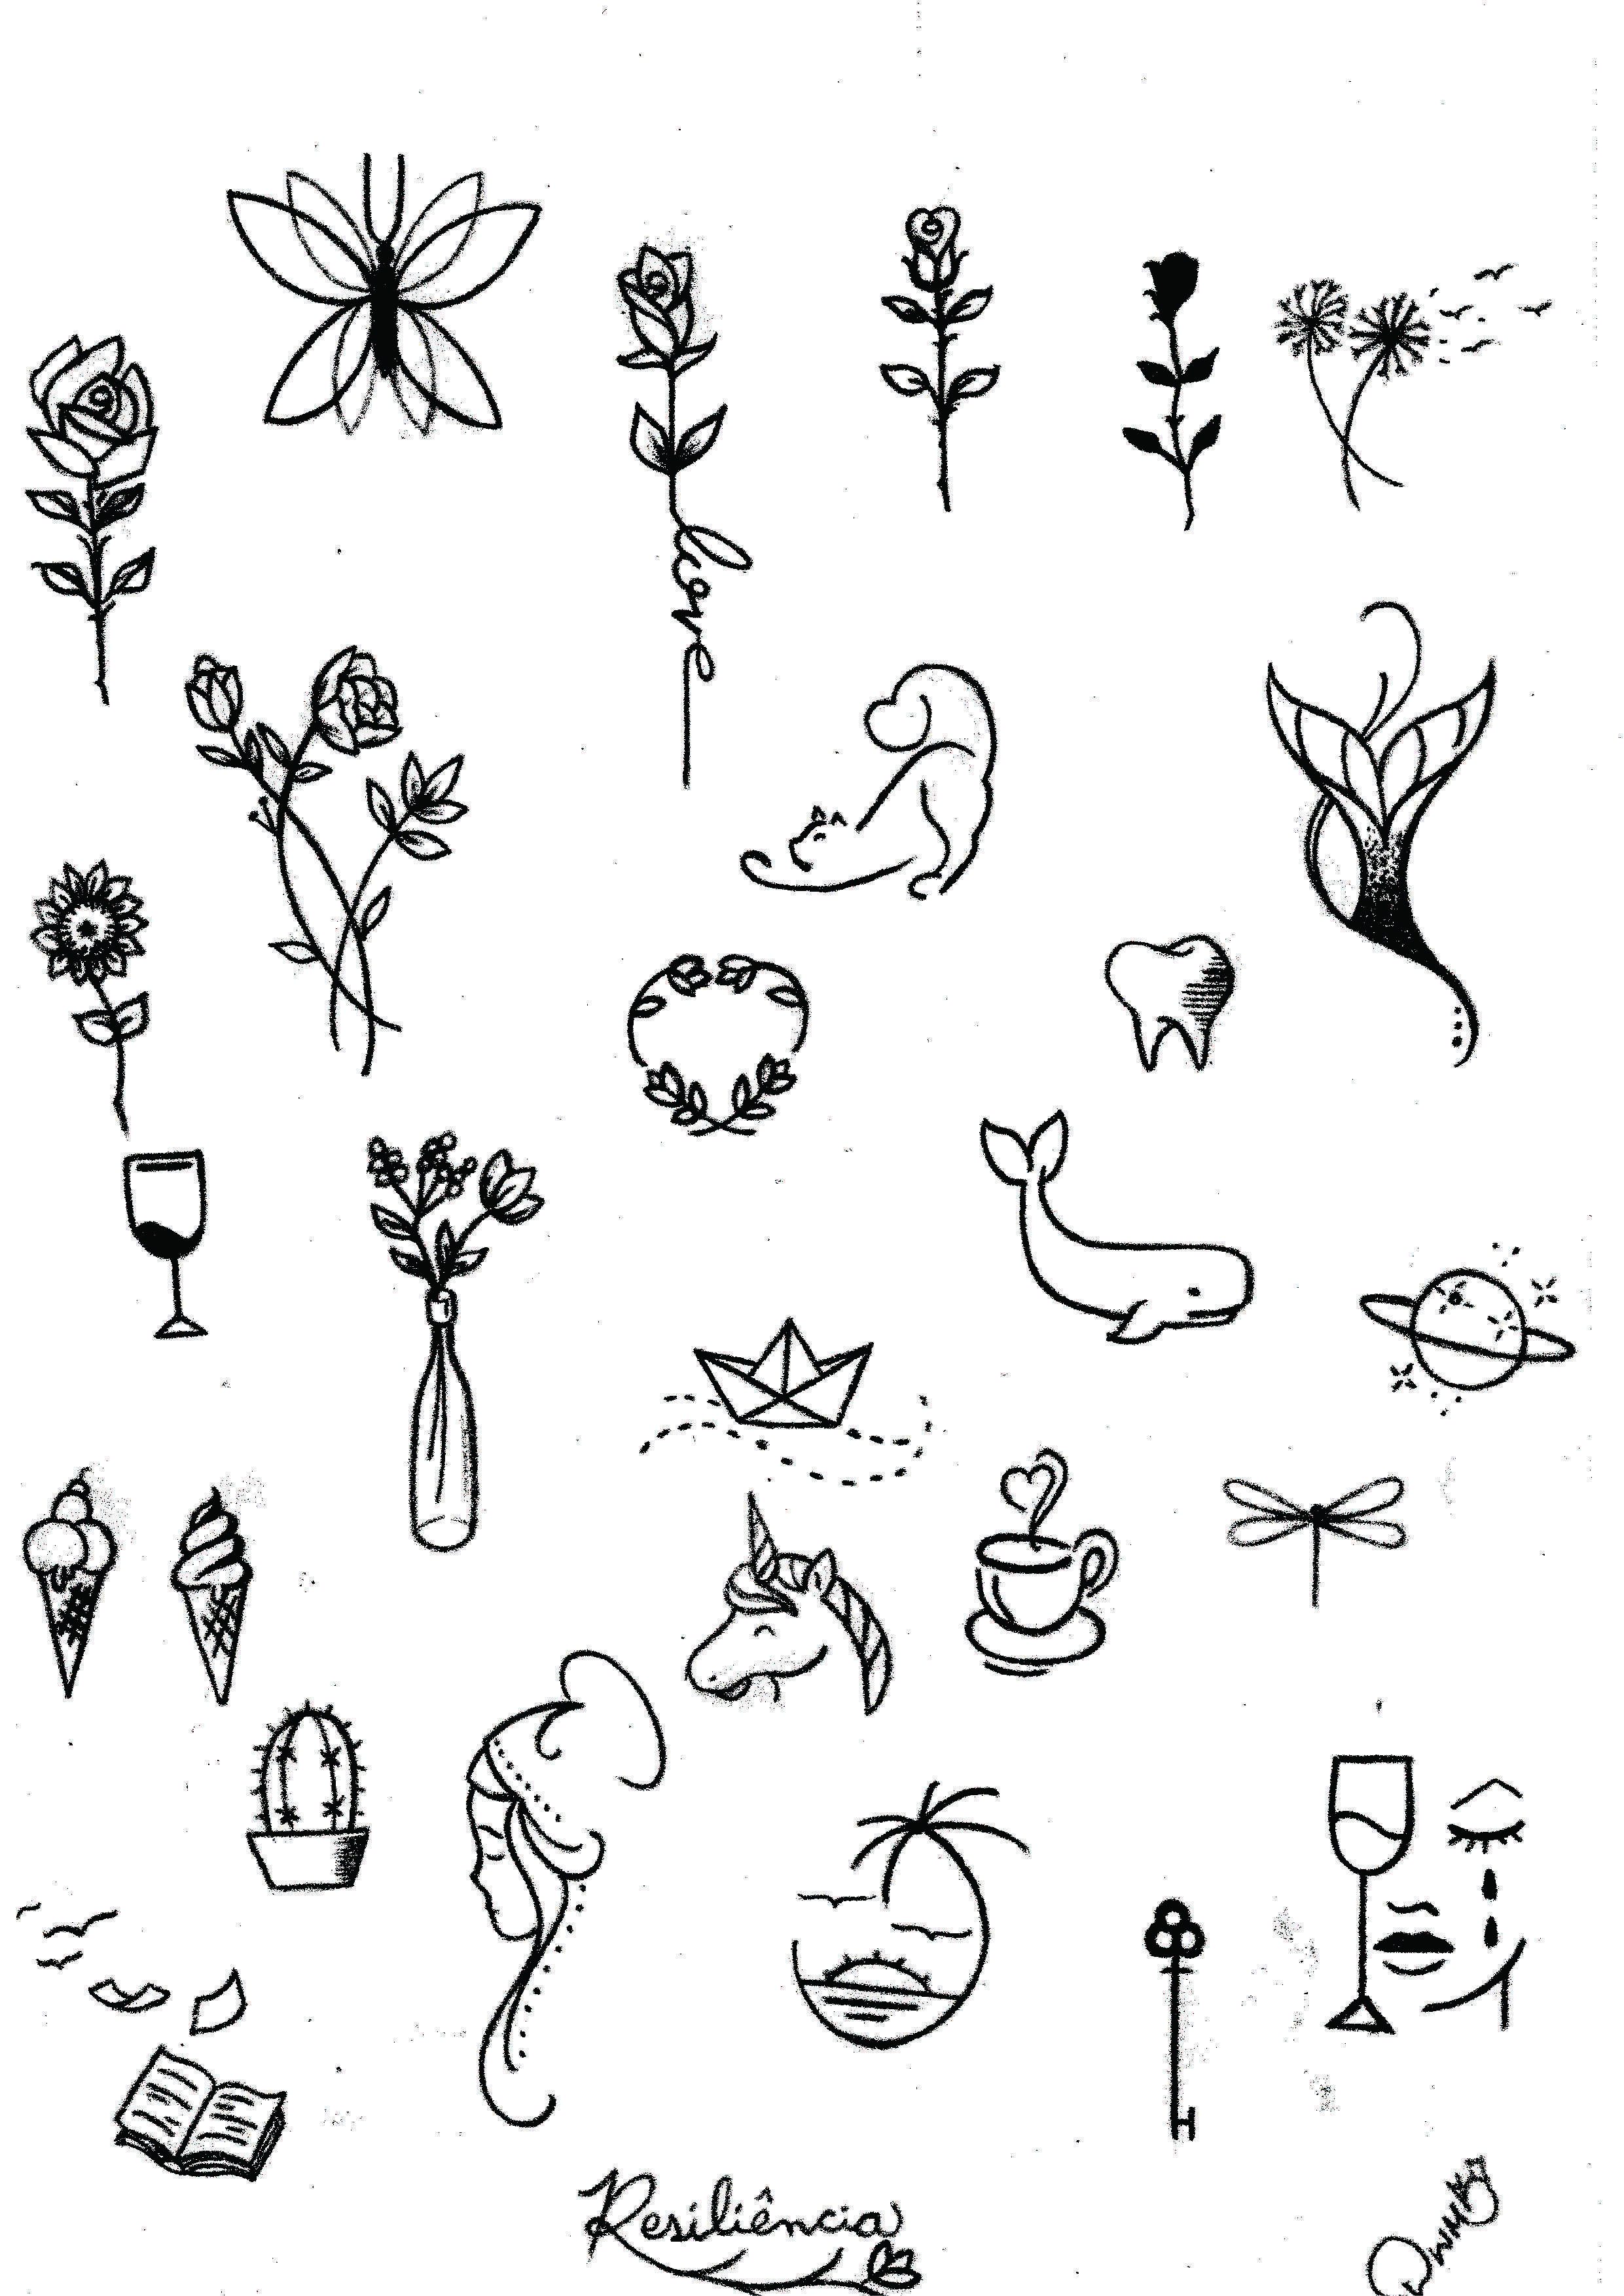 Cute Little Doodle Drawing Ideas For Bullet Journal Little Doodles Small Tattoos Cute Doodles